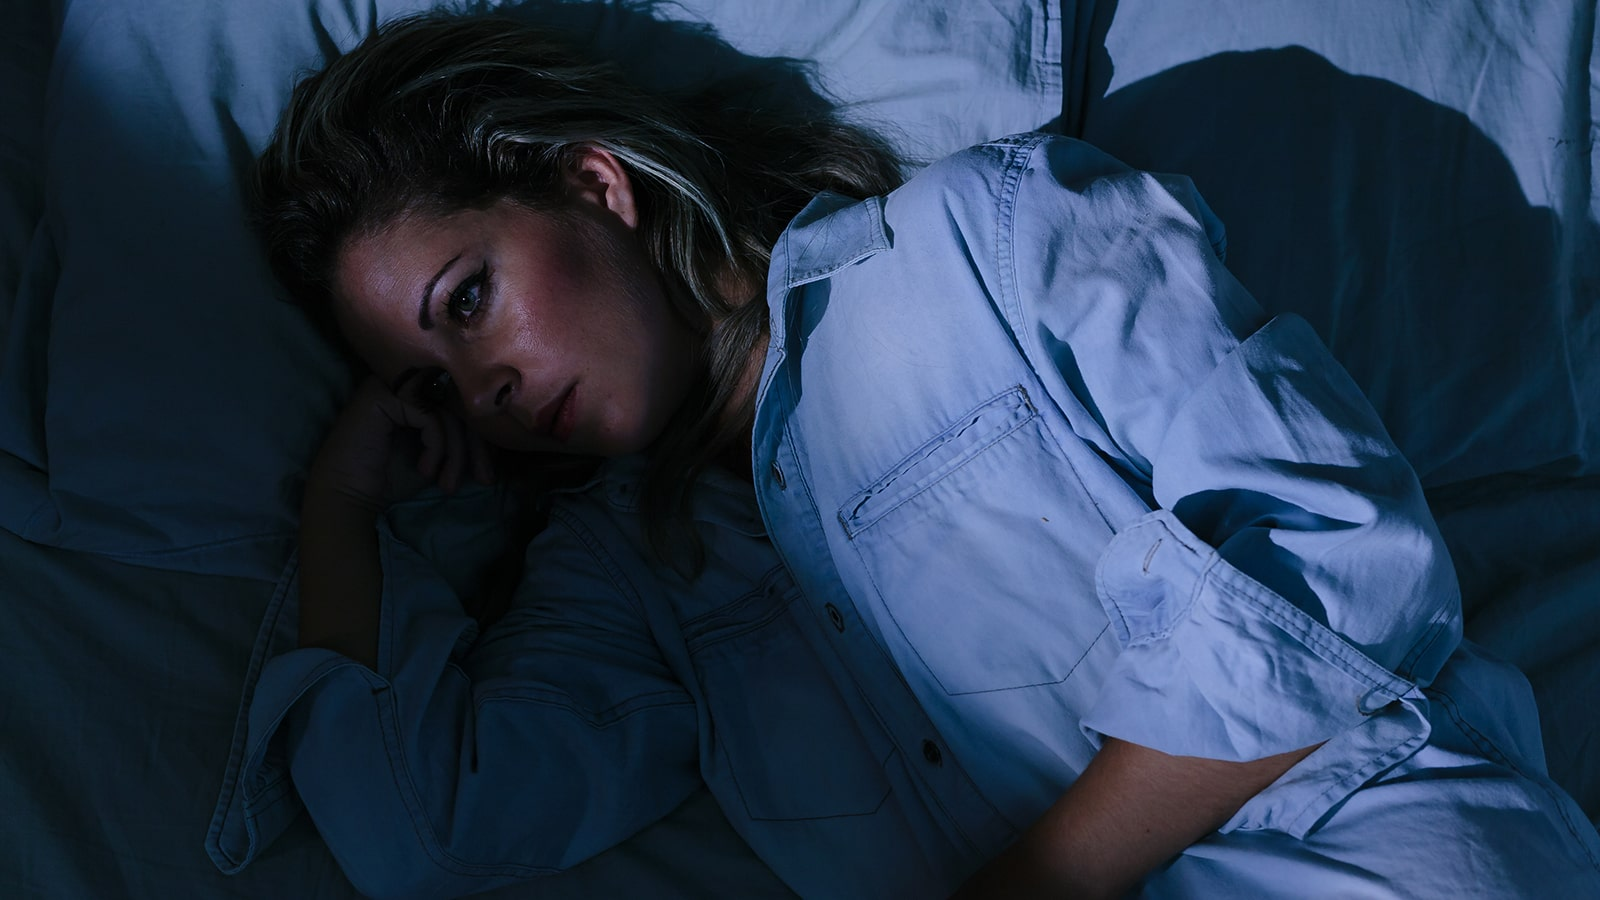 6 Things To Think About Every Night Before Bed